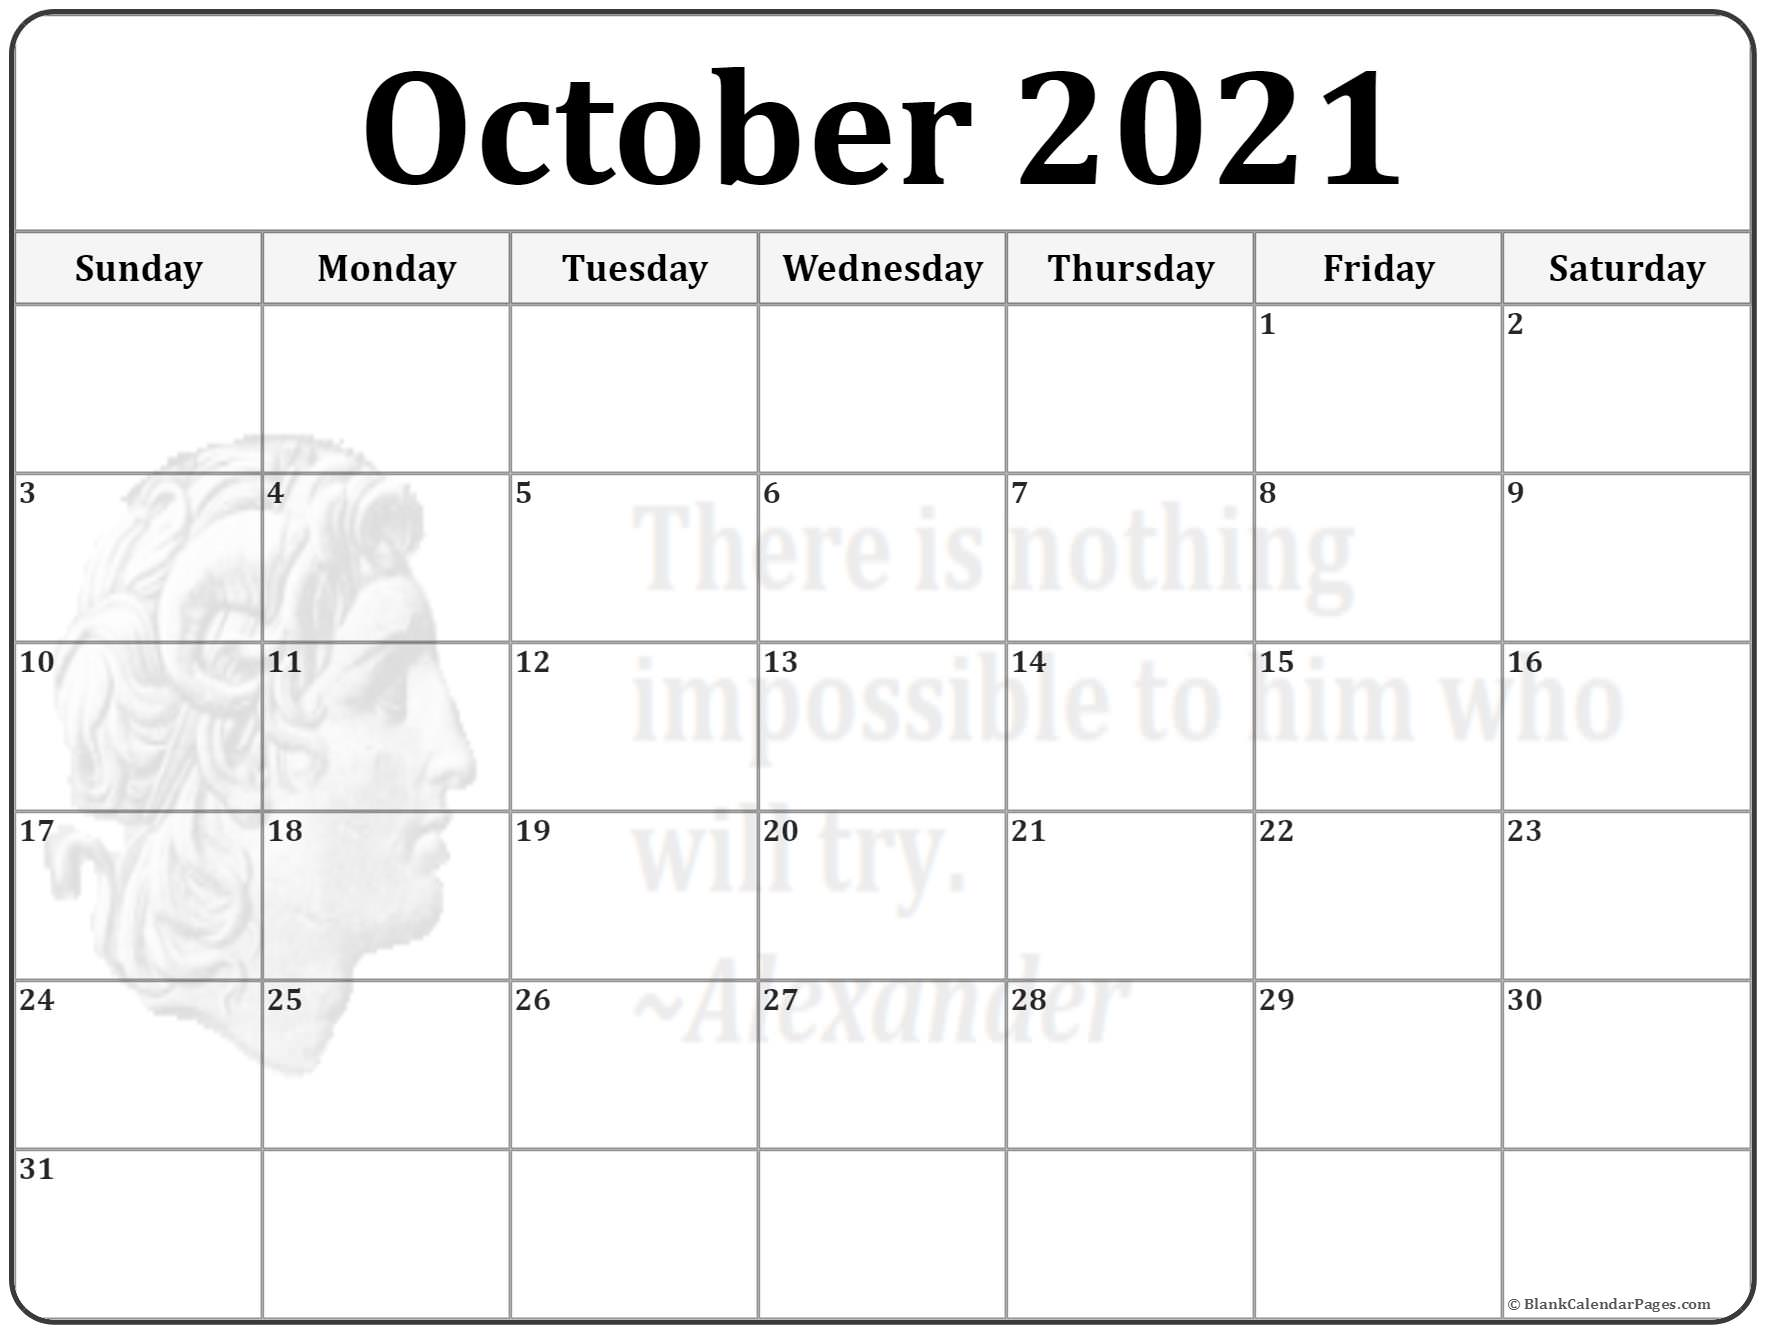 Calendar Printables Blank : October calendar templates of printable